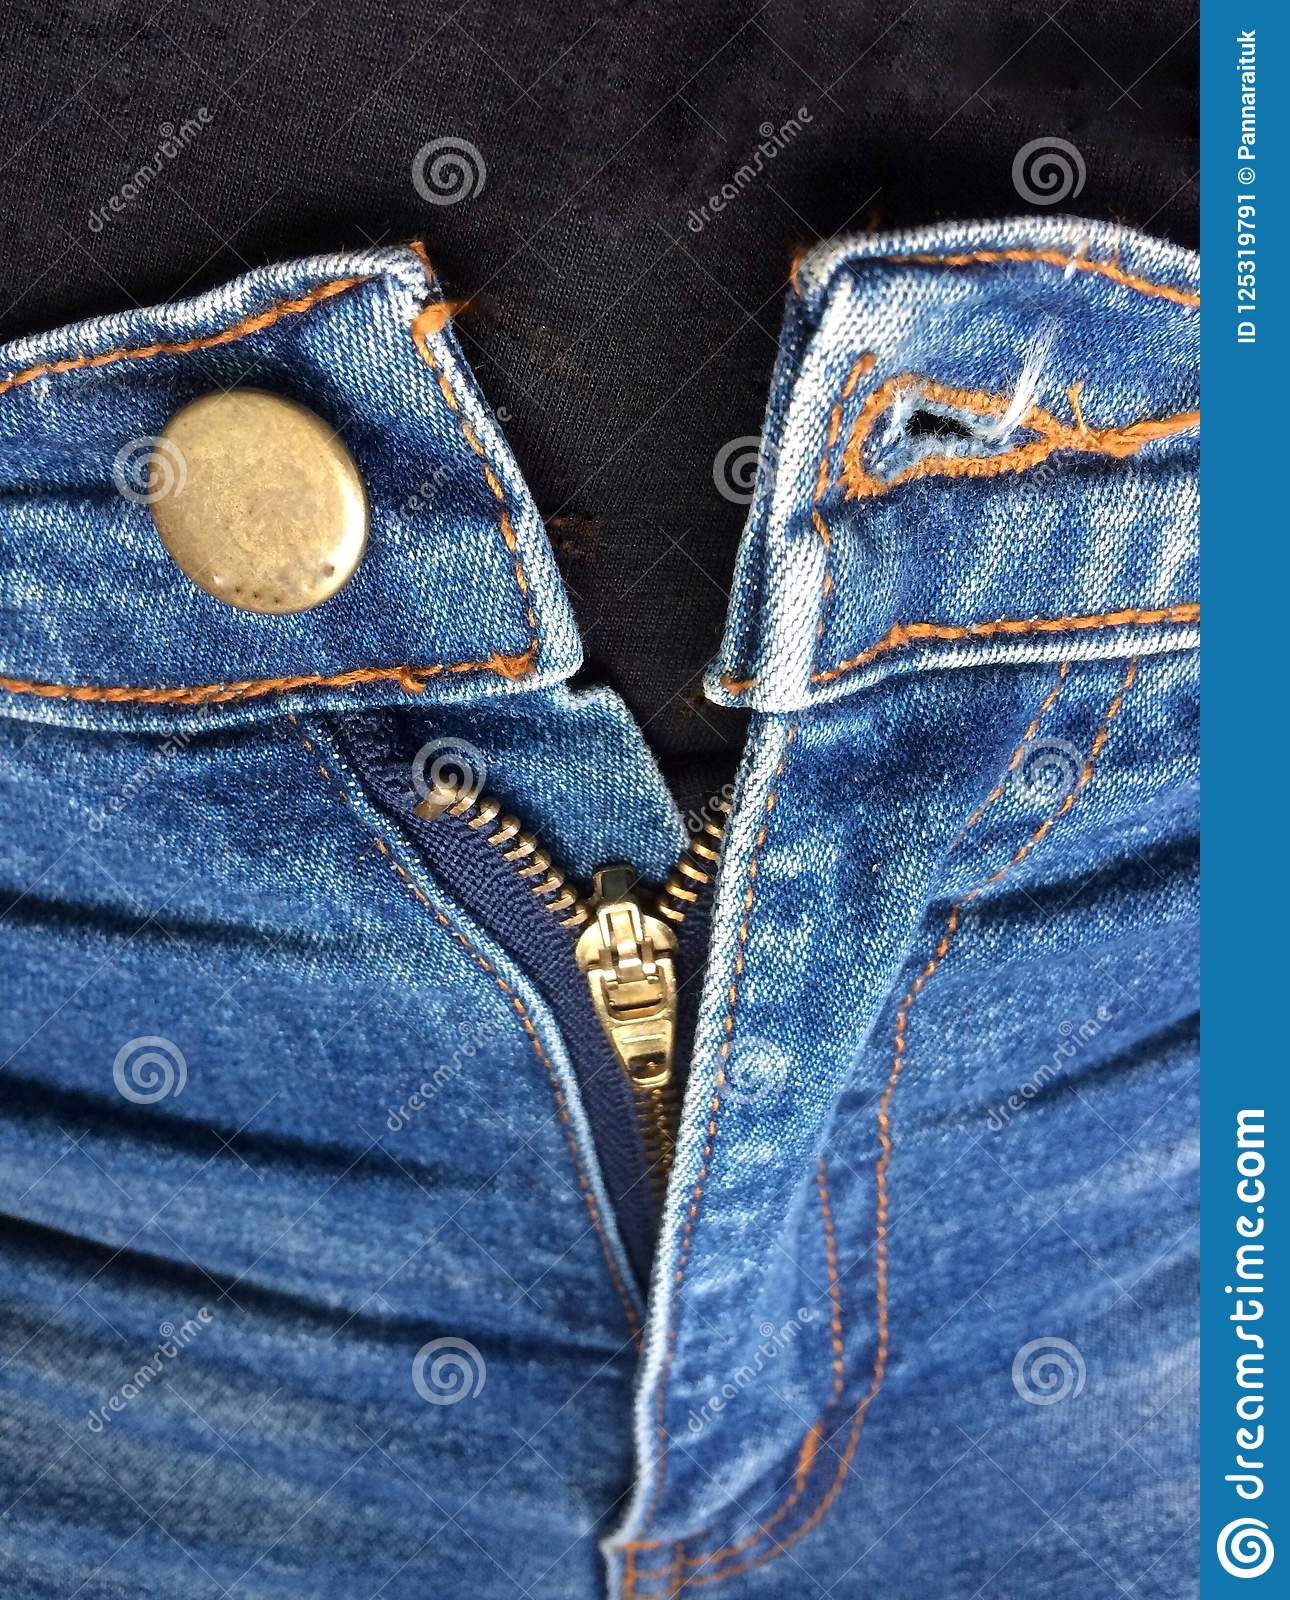 Tight jeans can not button and Zipper not up.